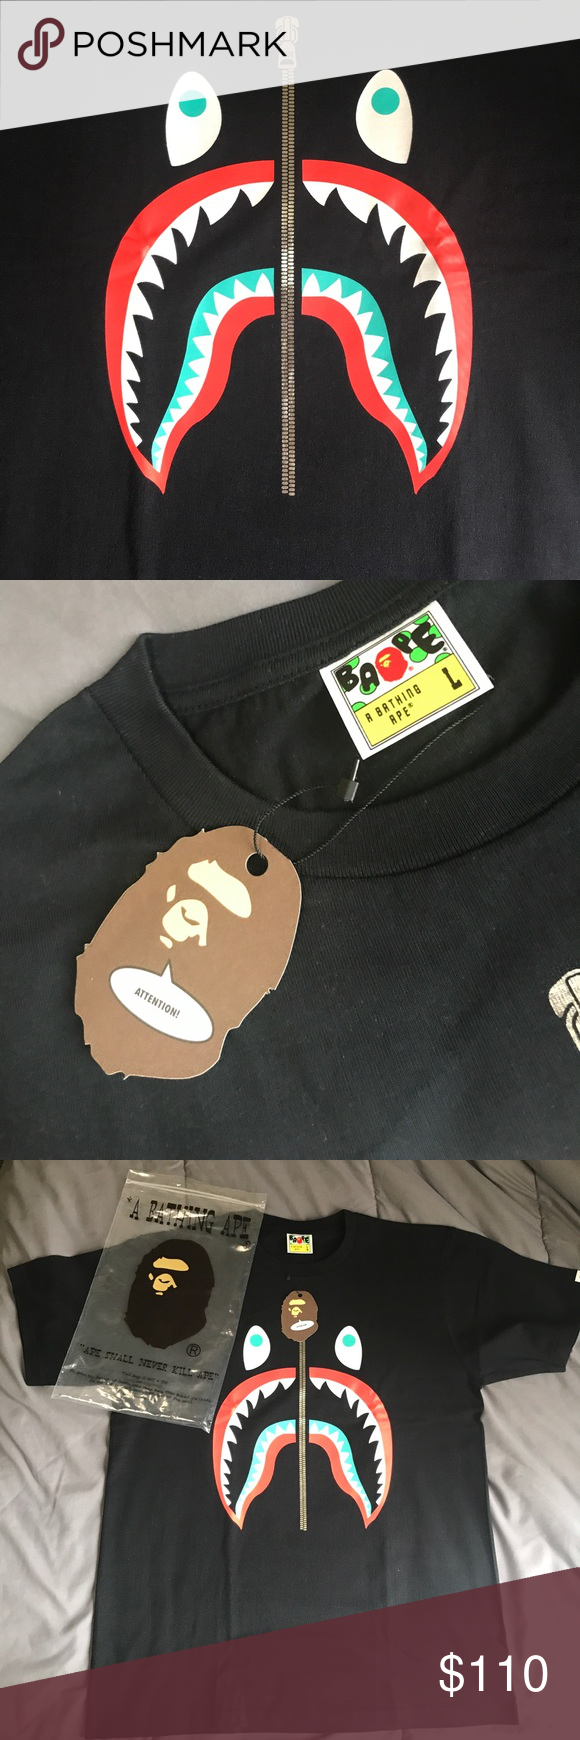 Bape Shark Zipper Shirt Zipper Shirt Bape Shirt Free Clothes